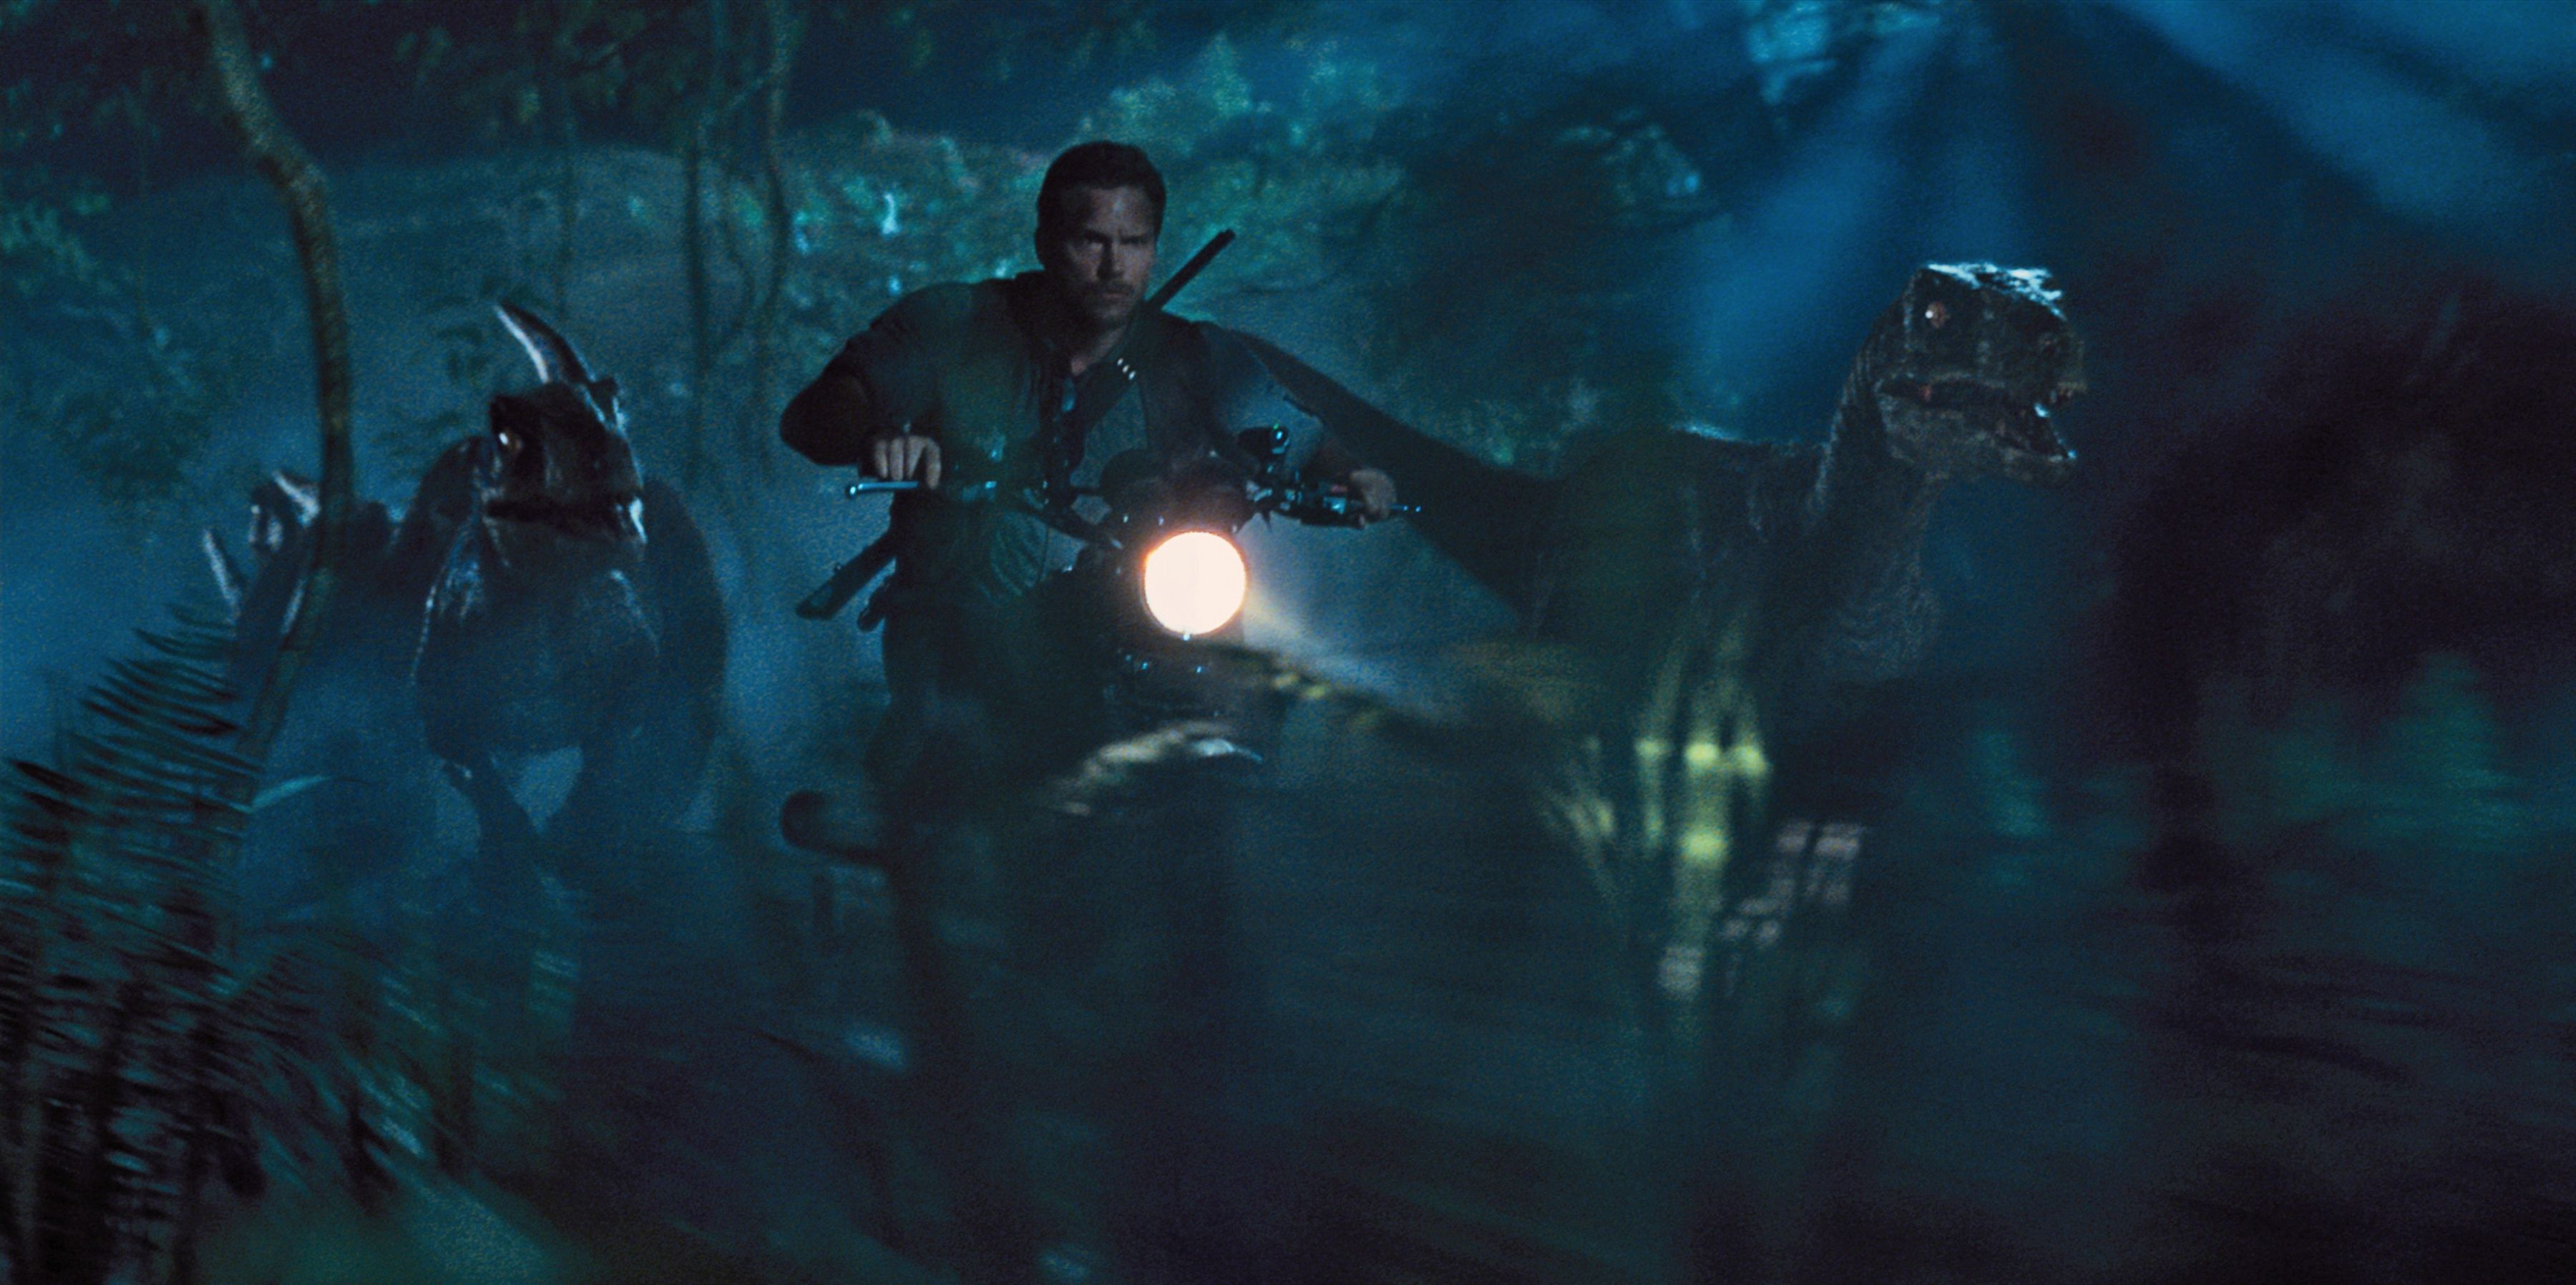 Jurassic world pictures offer hi res looks at new dinos for Puerta jurassic world